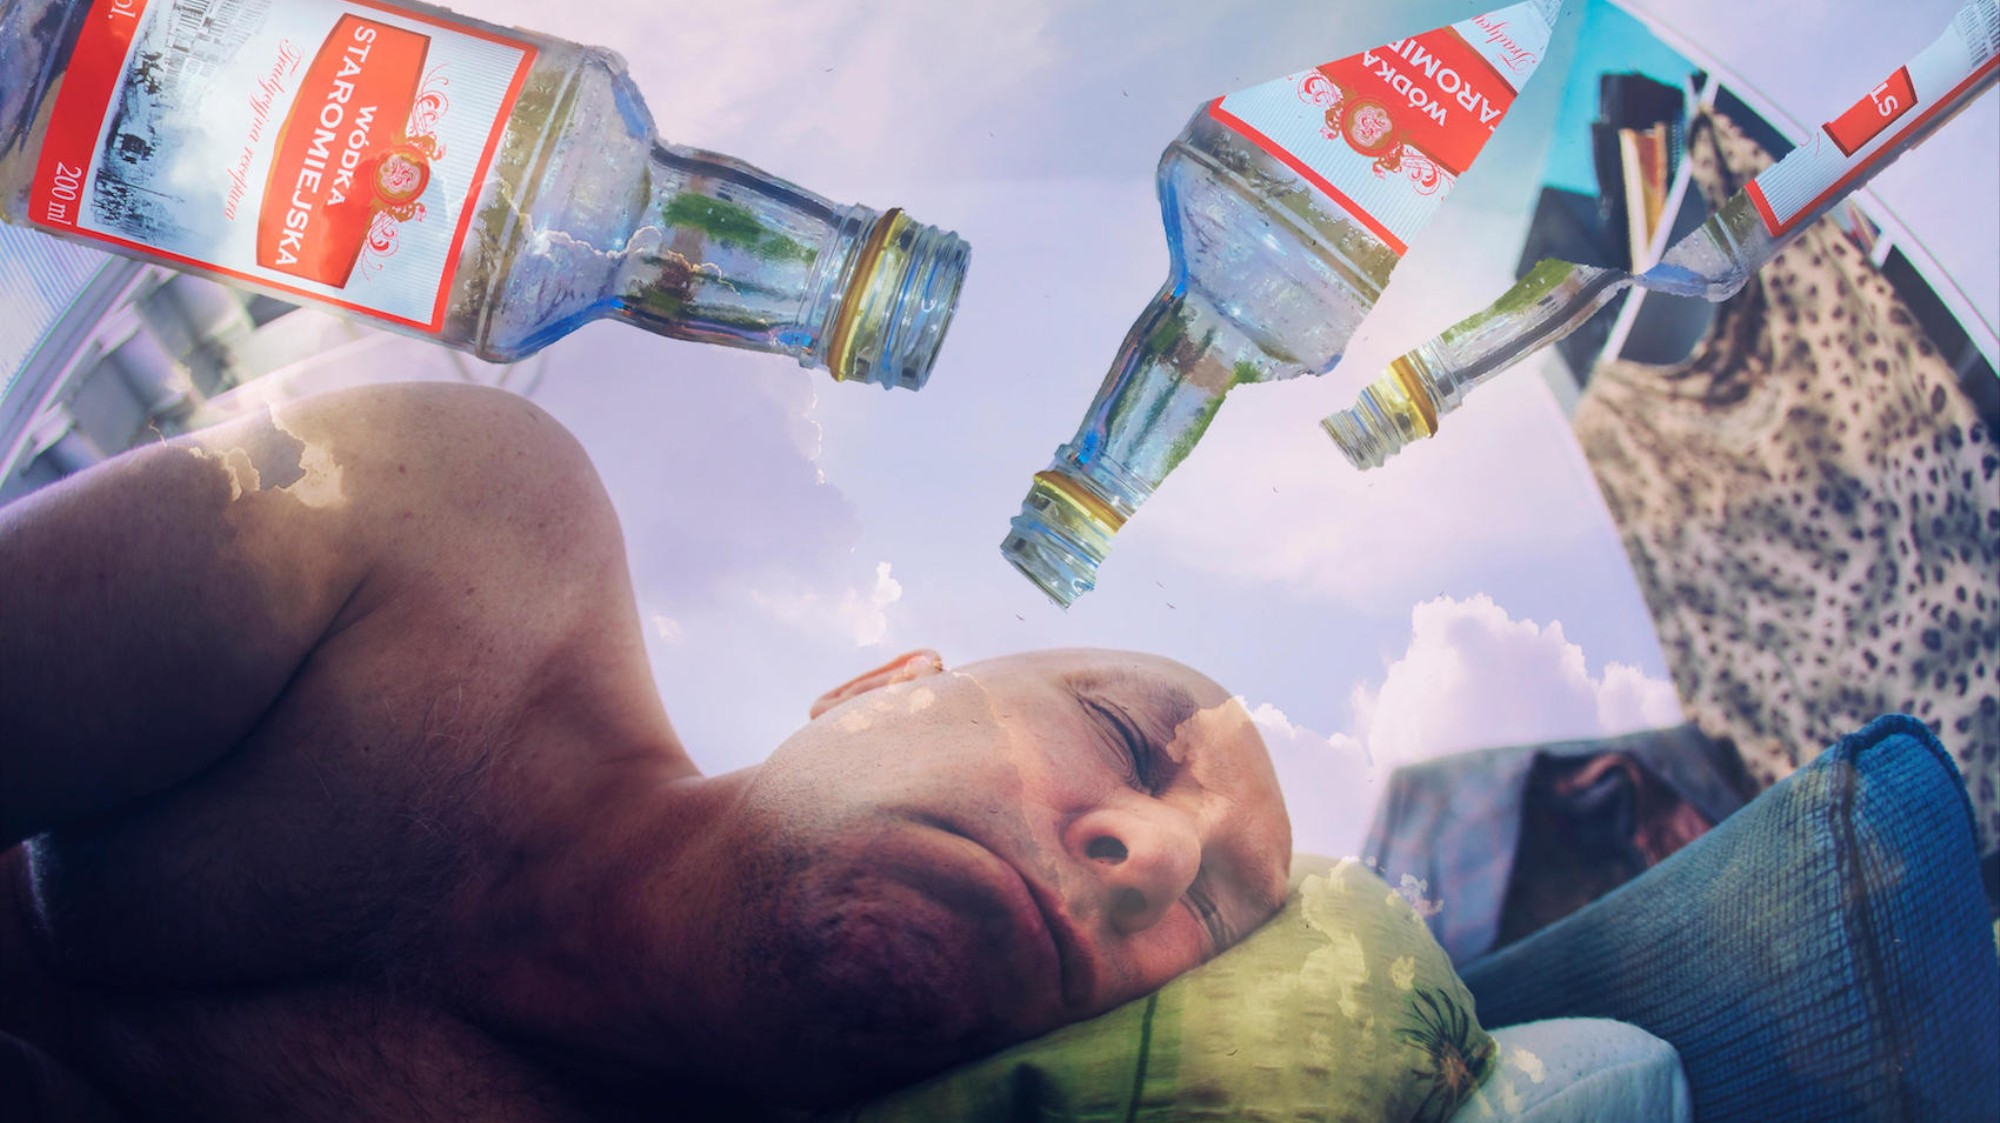 Why We're Obsessed with Hangovers - VICE